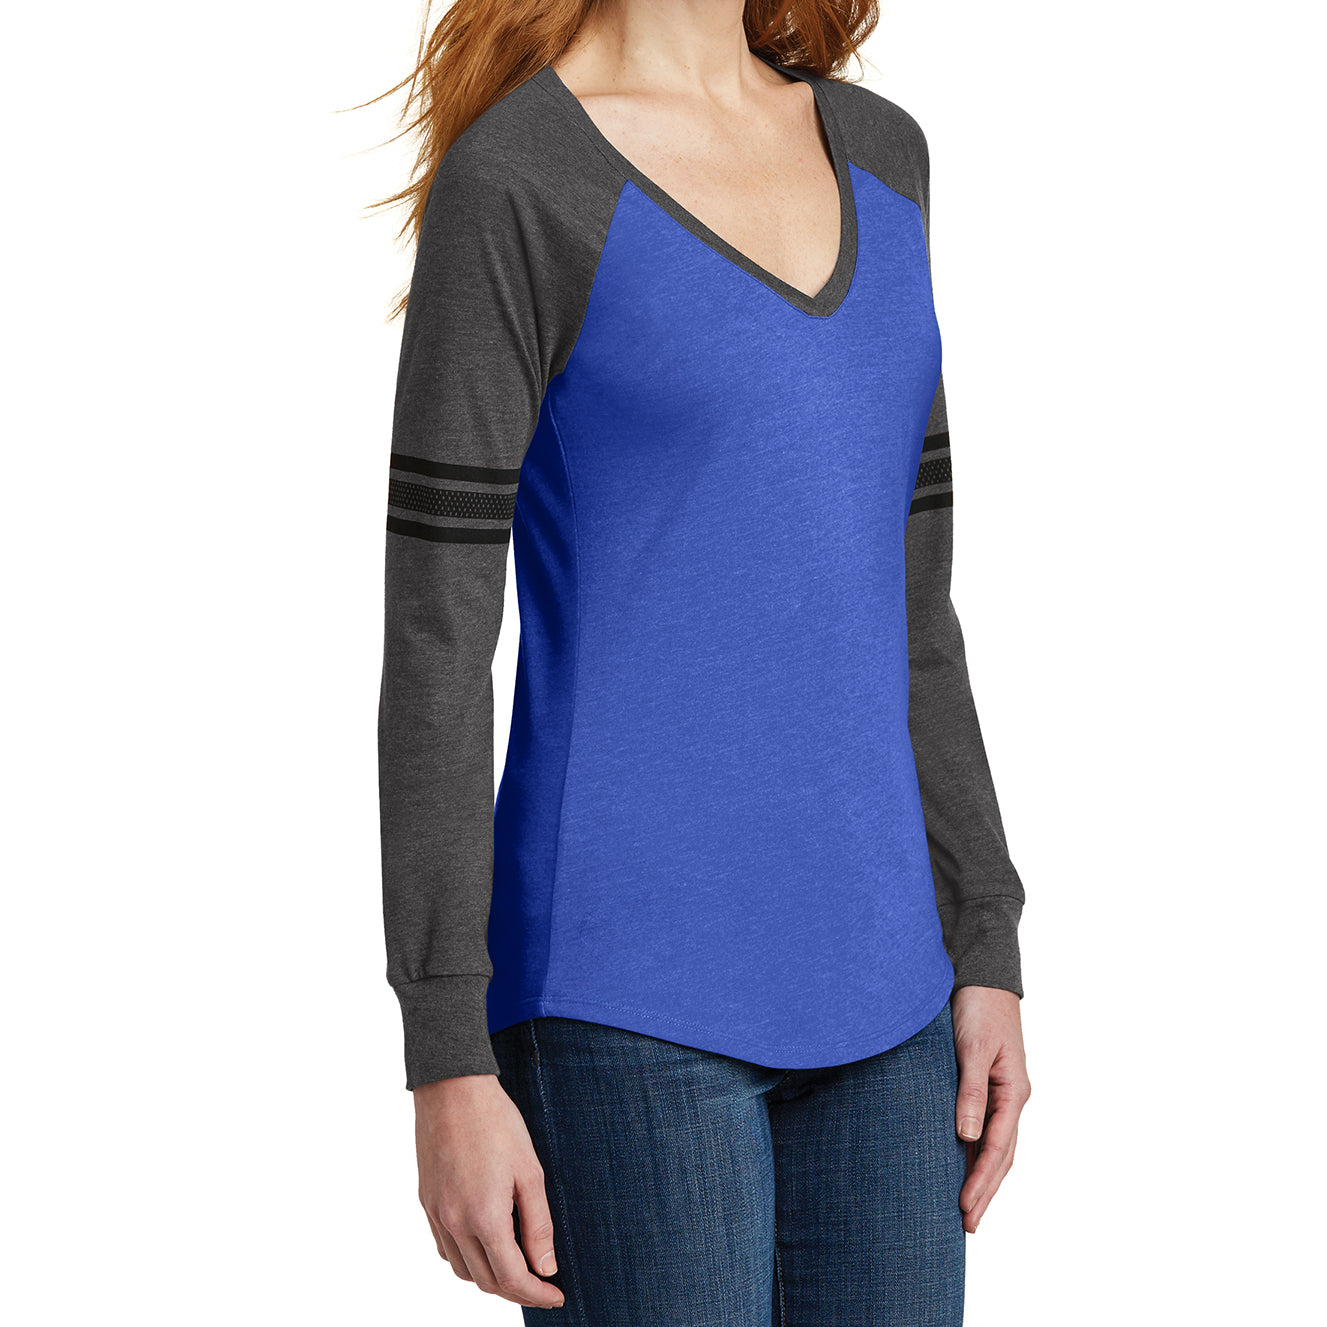 50827863 Women's Game Long Sleeve V-Neck Tee - Heathered True Royal/ Heathered  Charcoal/